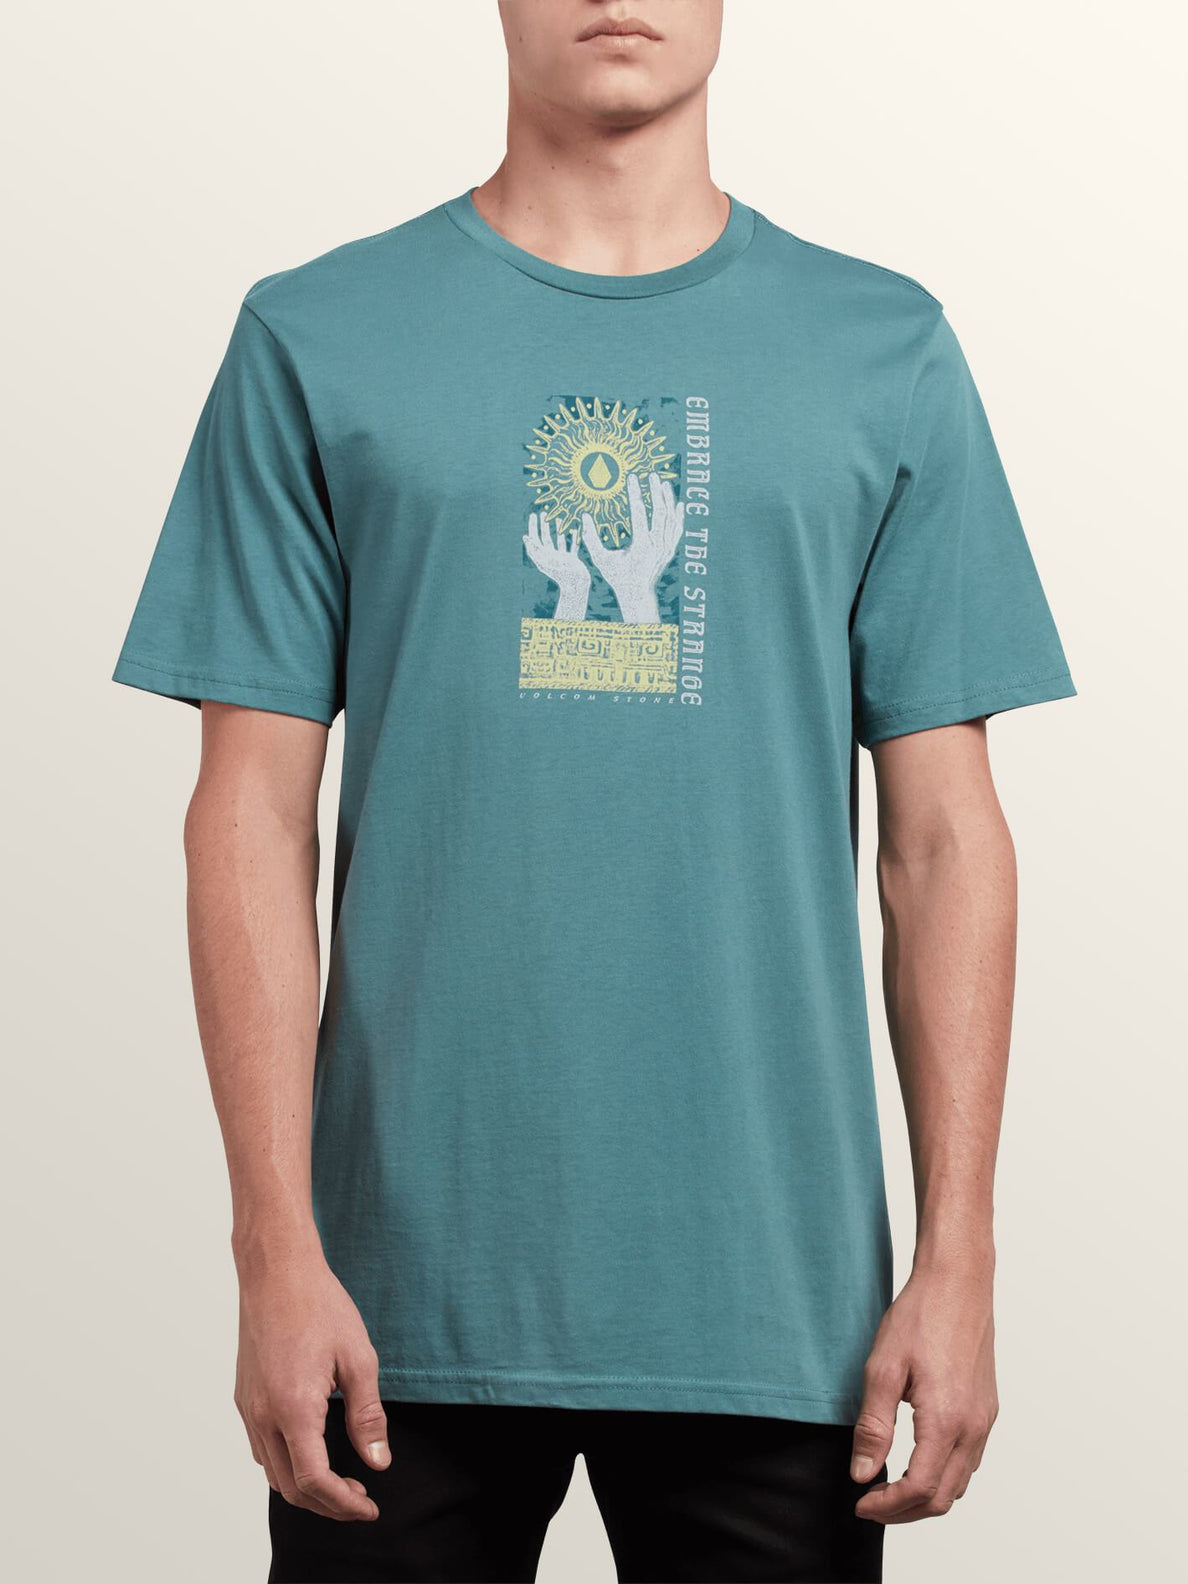 Extrano Short Sleeve Tee In Pine, Front View